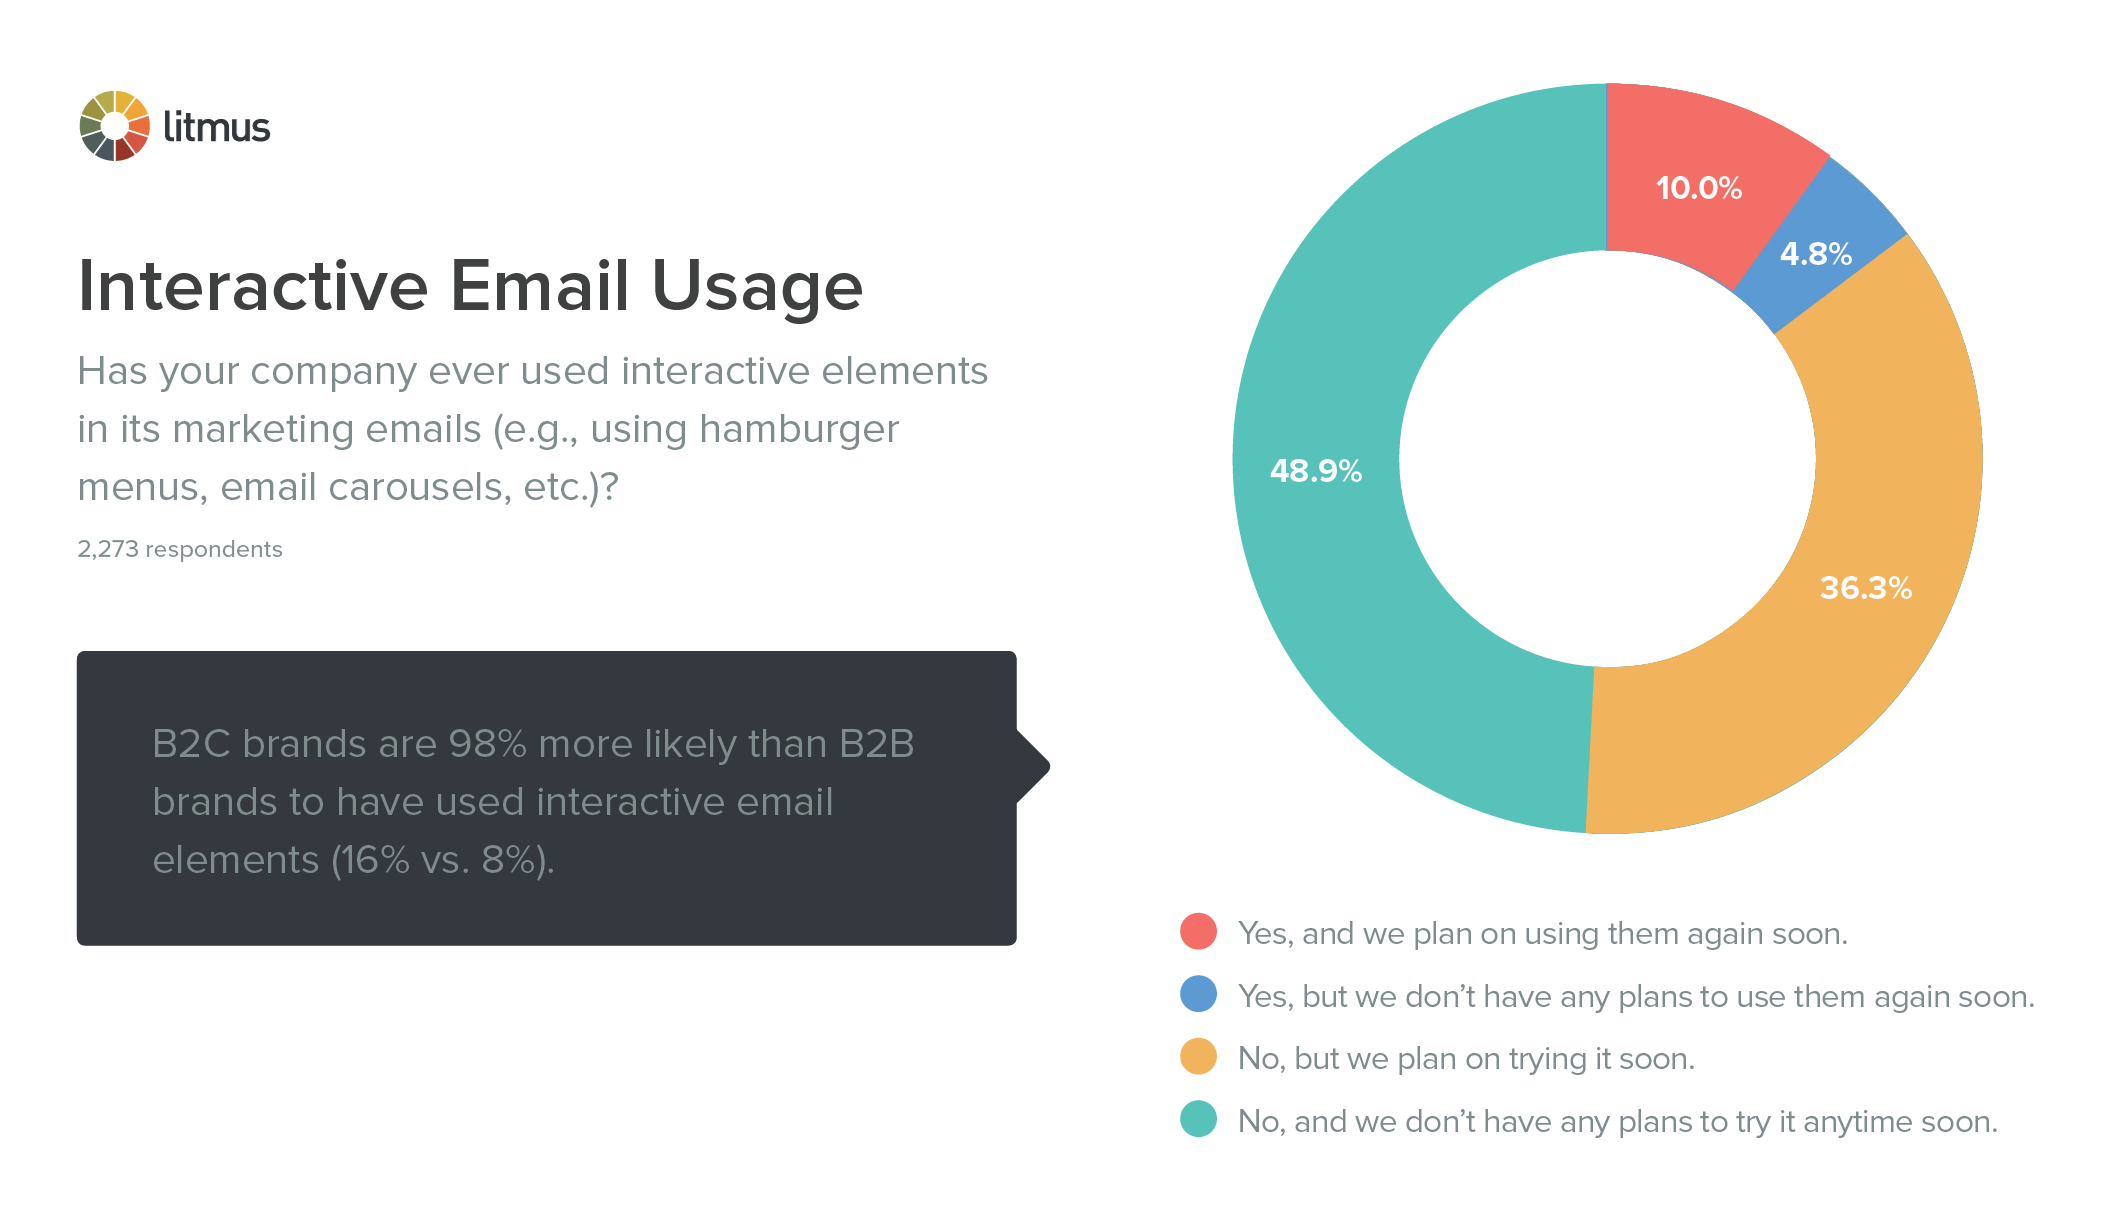 Interactive Email Usage